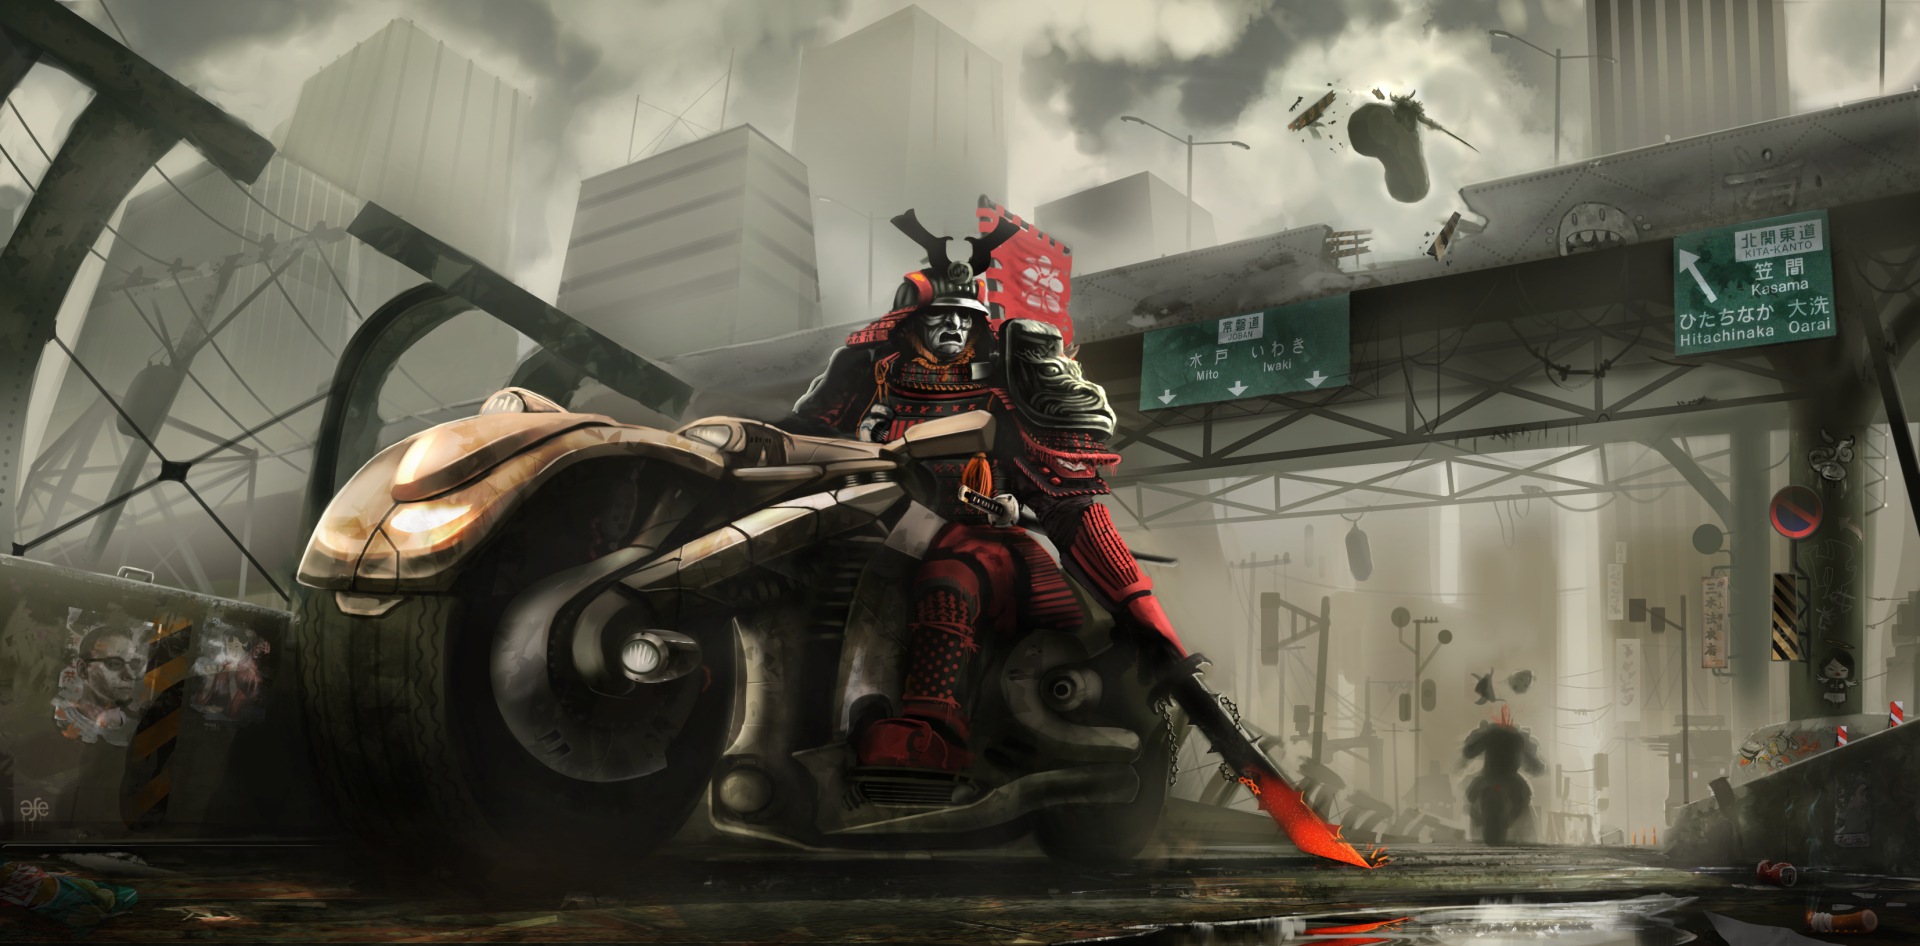 Sci Fi - Warrior  City Sword Bike Motorcycle Armor Samurai Wallpaper